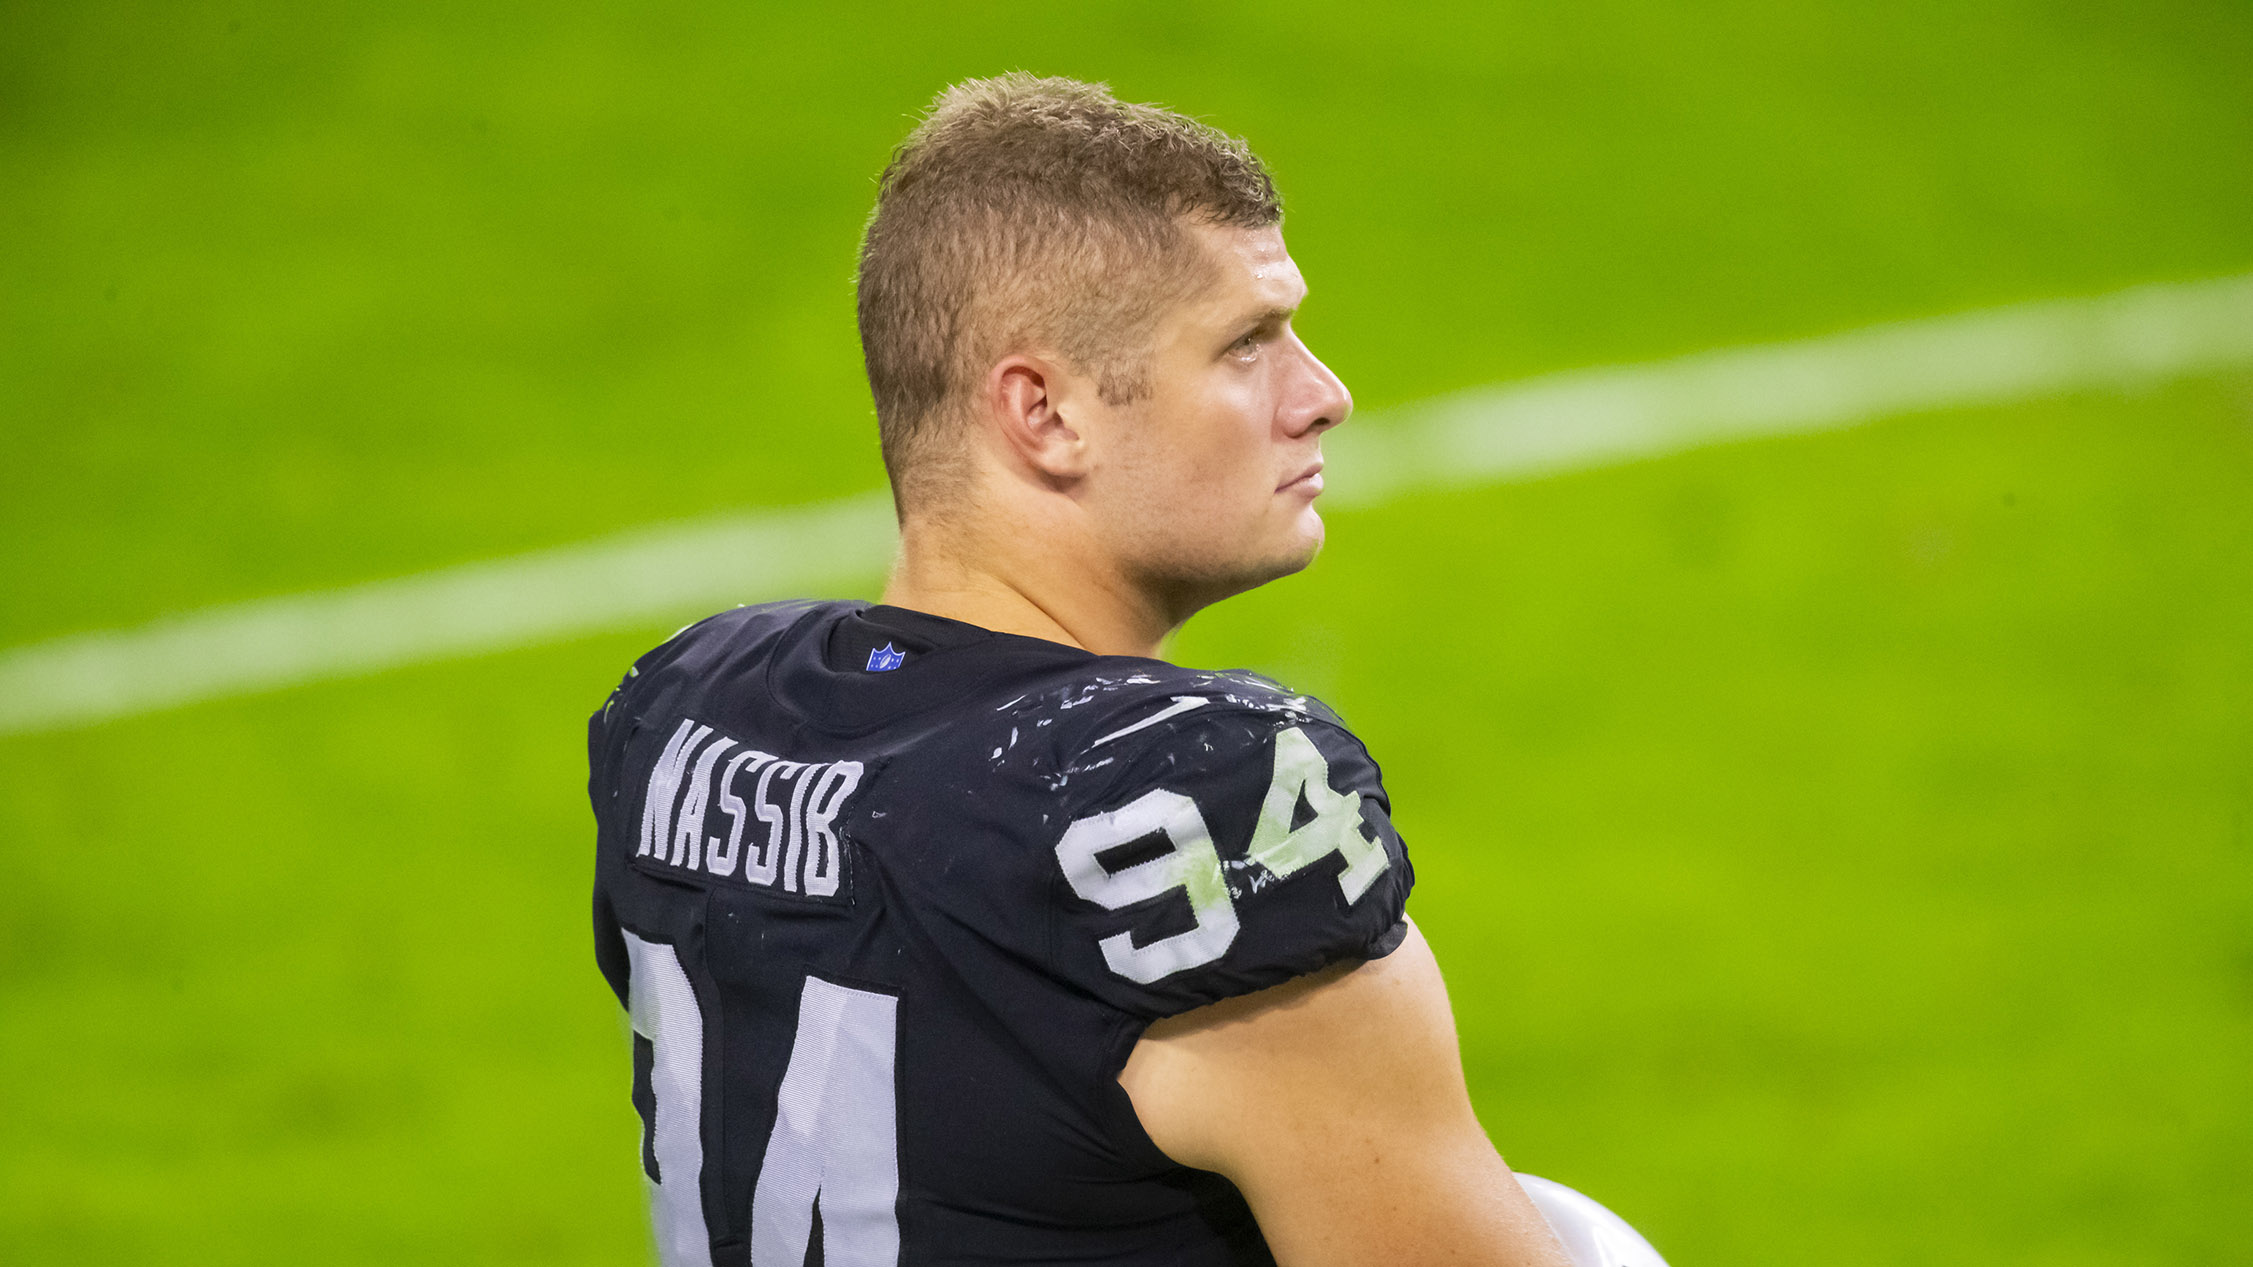 Raiders' Carl Nassib comes out as first active gay NFL player   RSN